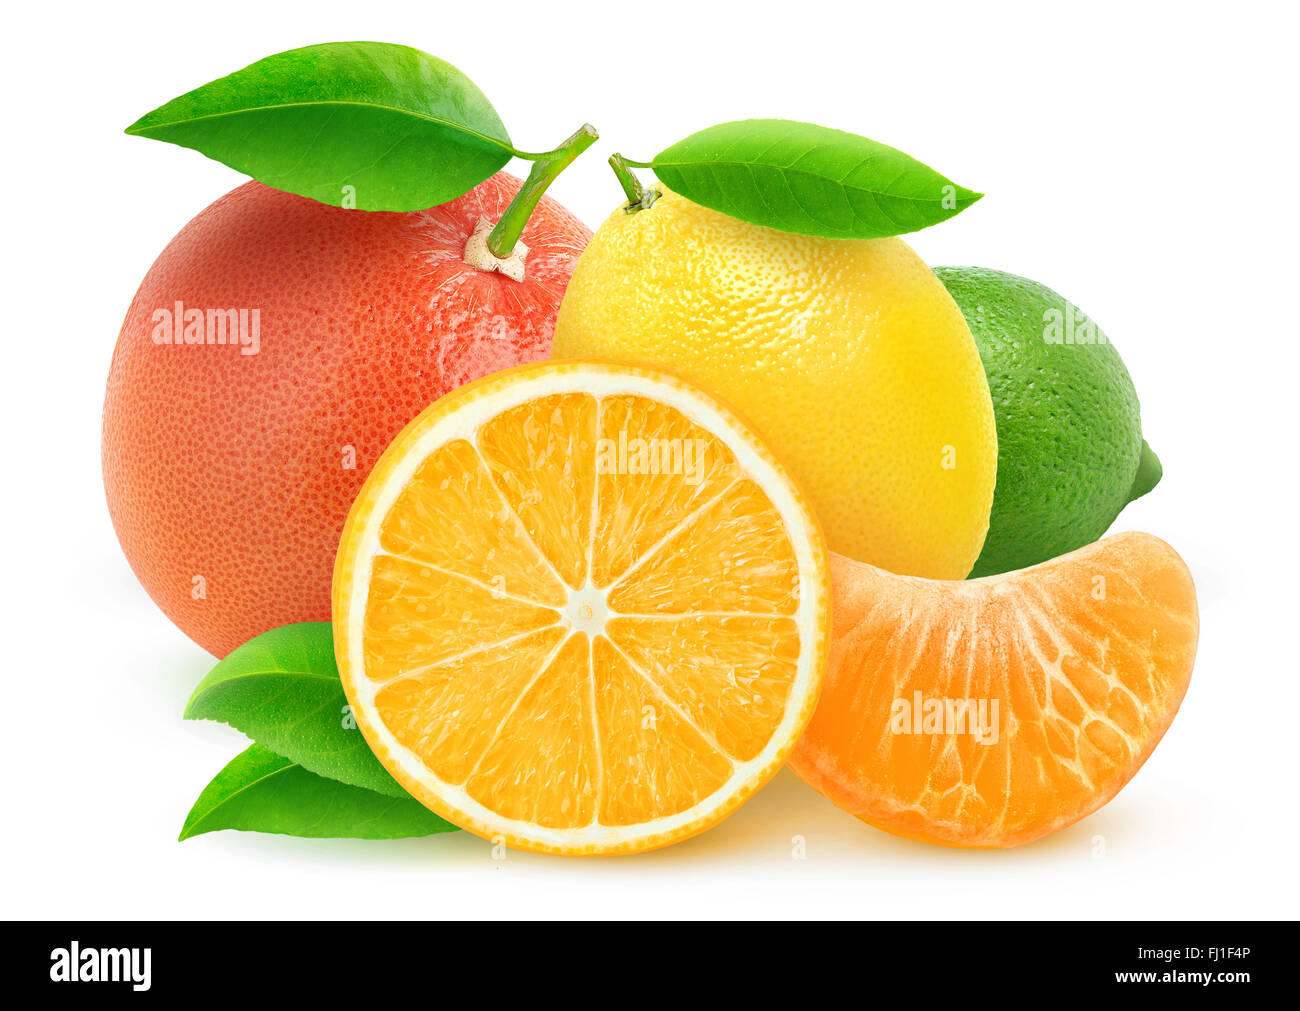 Various citrus fruits isolated on white with clipping path - Stock Image